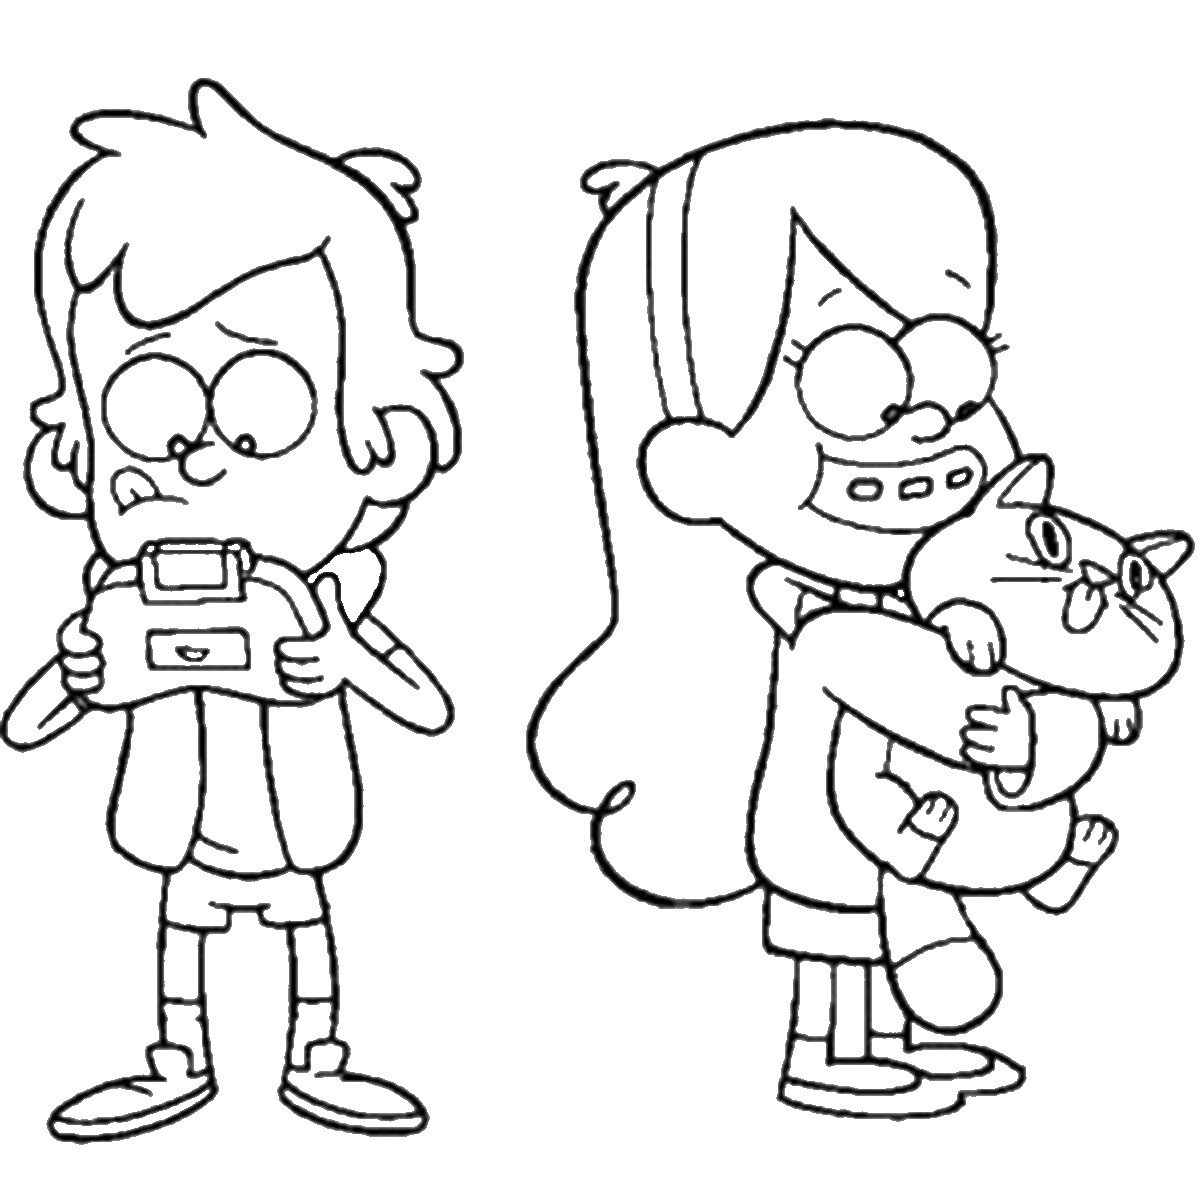 gravity falls coloring pages free - photo#36